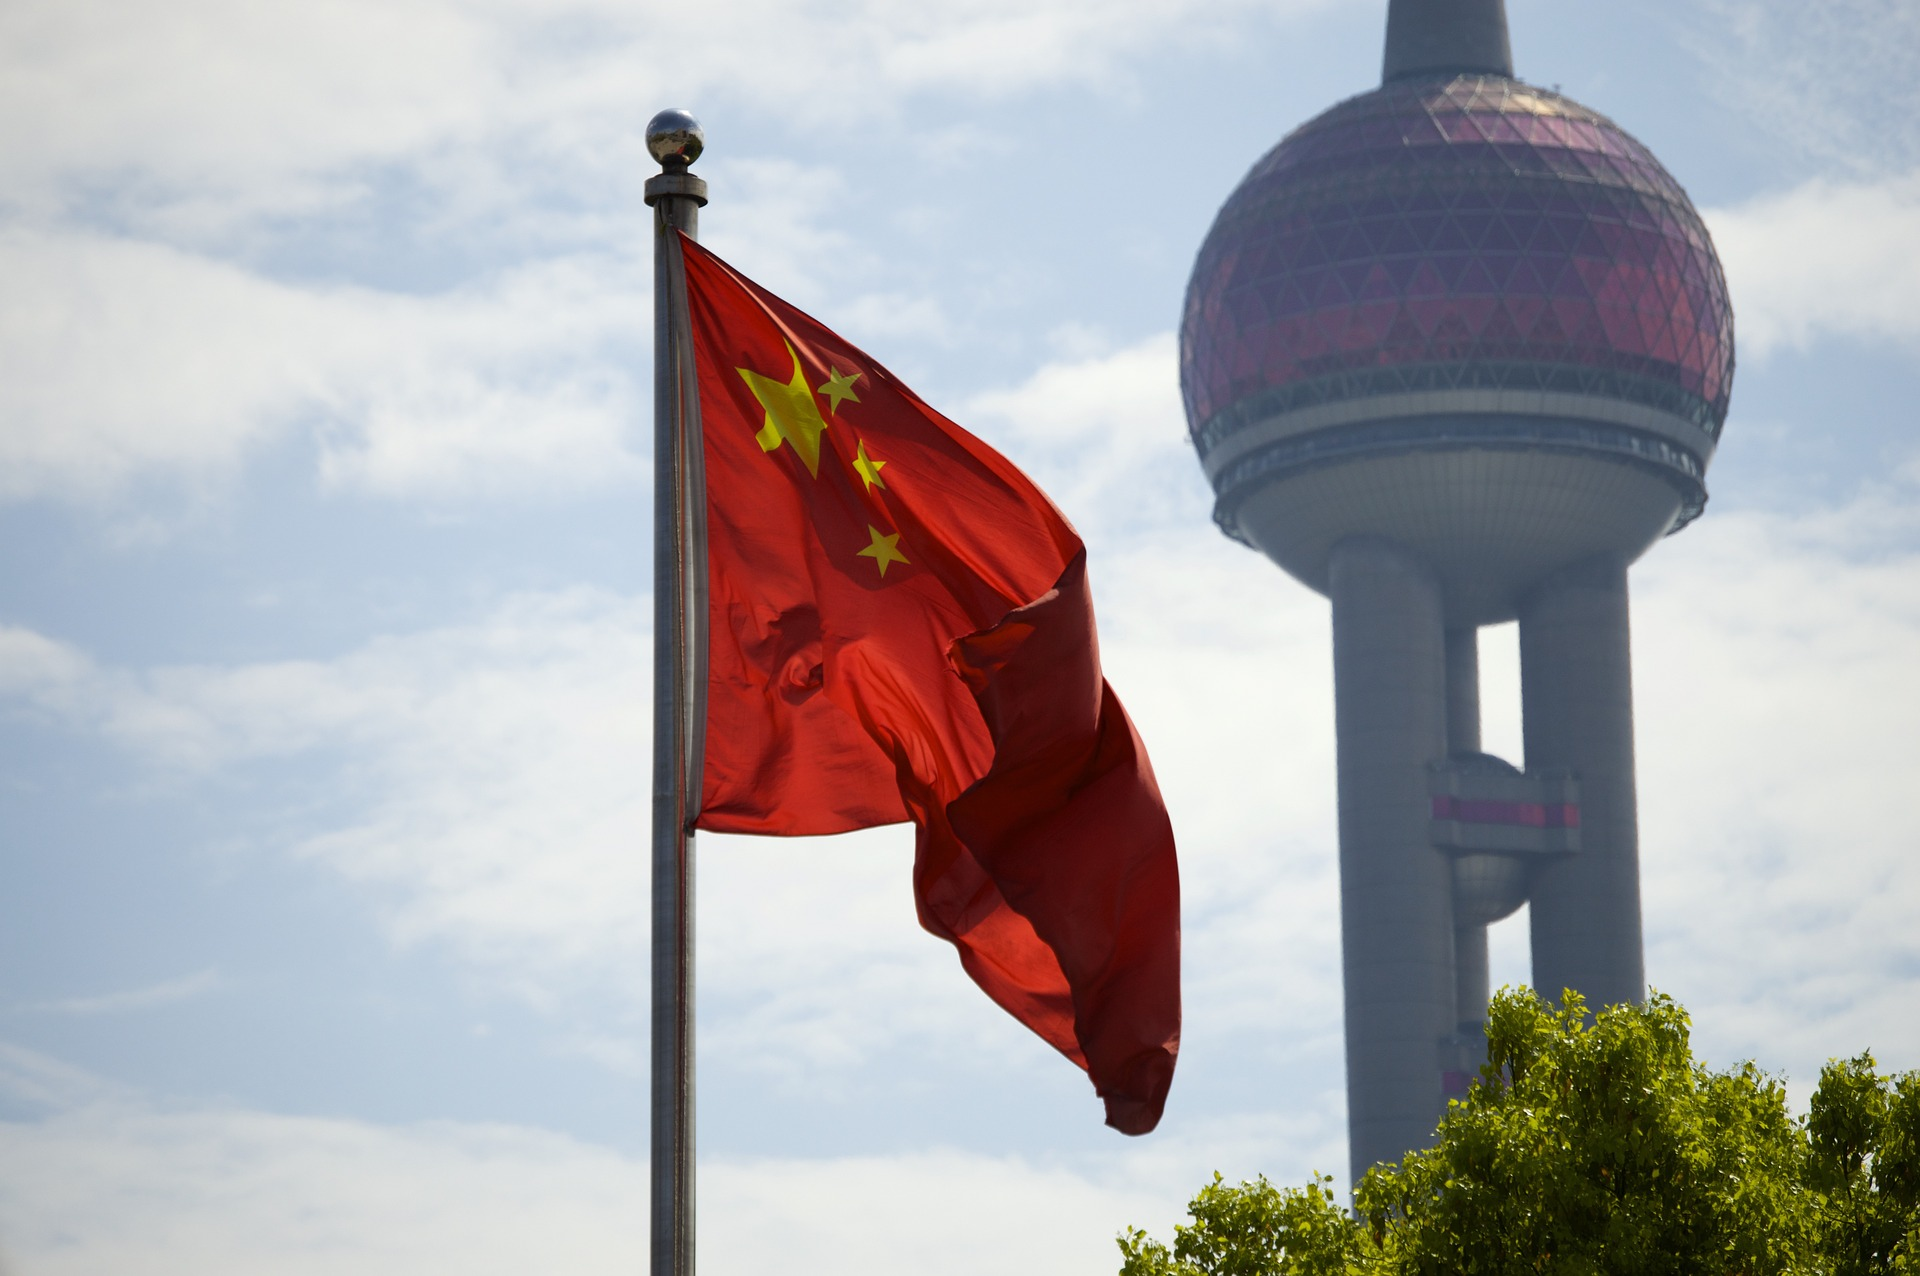 World Cup glory is Xi Jinping's dream for China